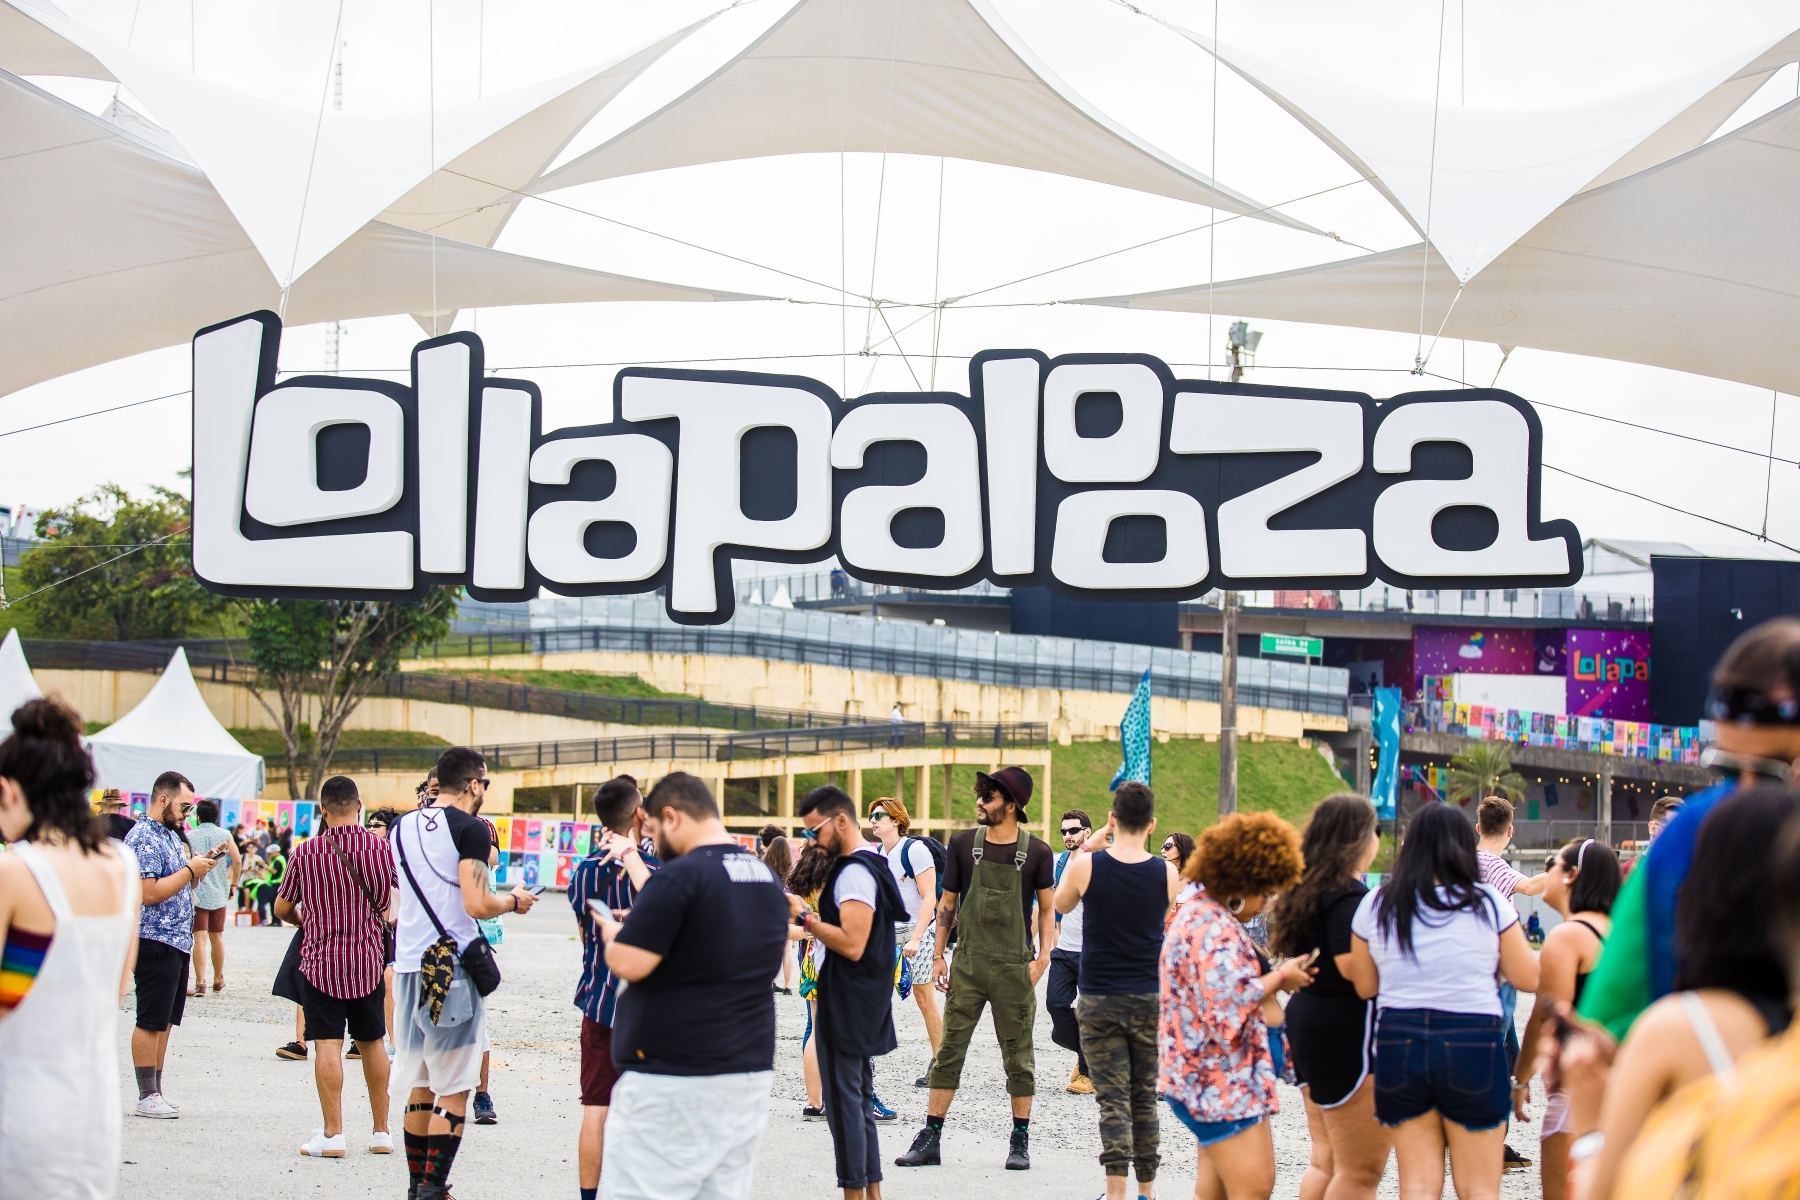 A general view of the Lollapalooza Logo entrance during the first day or day one of Lollapalooza Brazil Music Festival at Interlagos Racetrack on April 05, 2019 in Sao Paulo, Brazil. (Photo by Mauricio Santana/Getty Images)